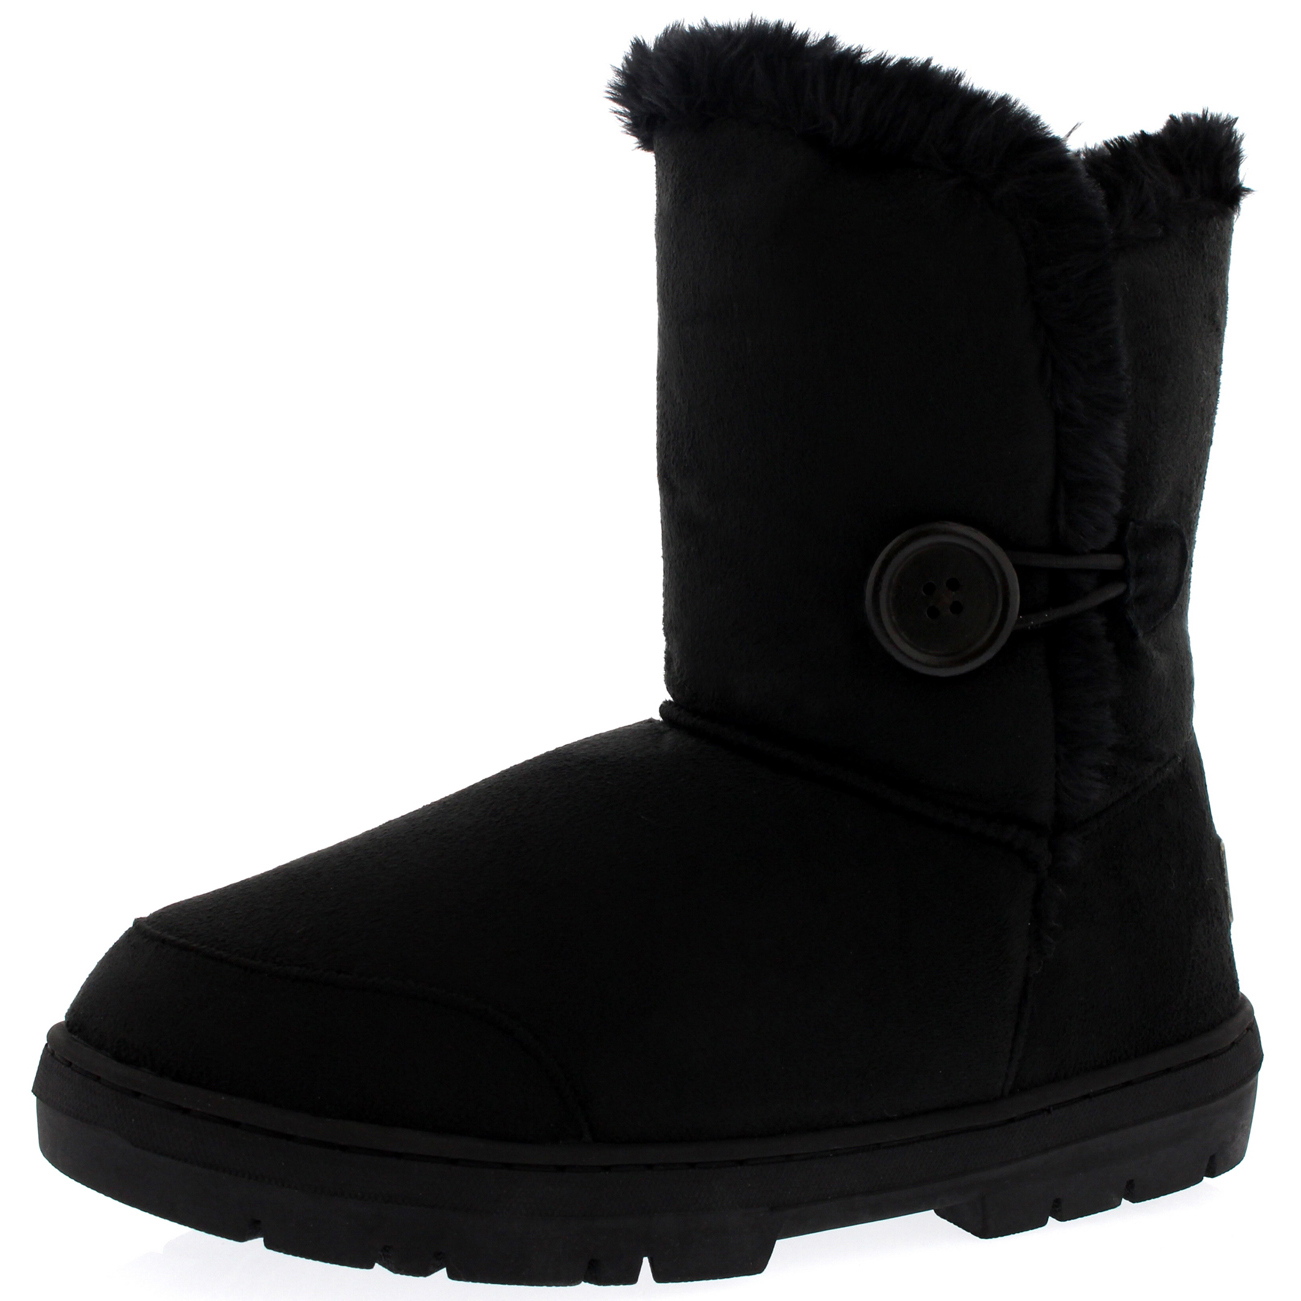 Womens One Button Short Classic Fur Lined Waterproof Winter Rain Snow Boots 3-9